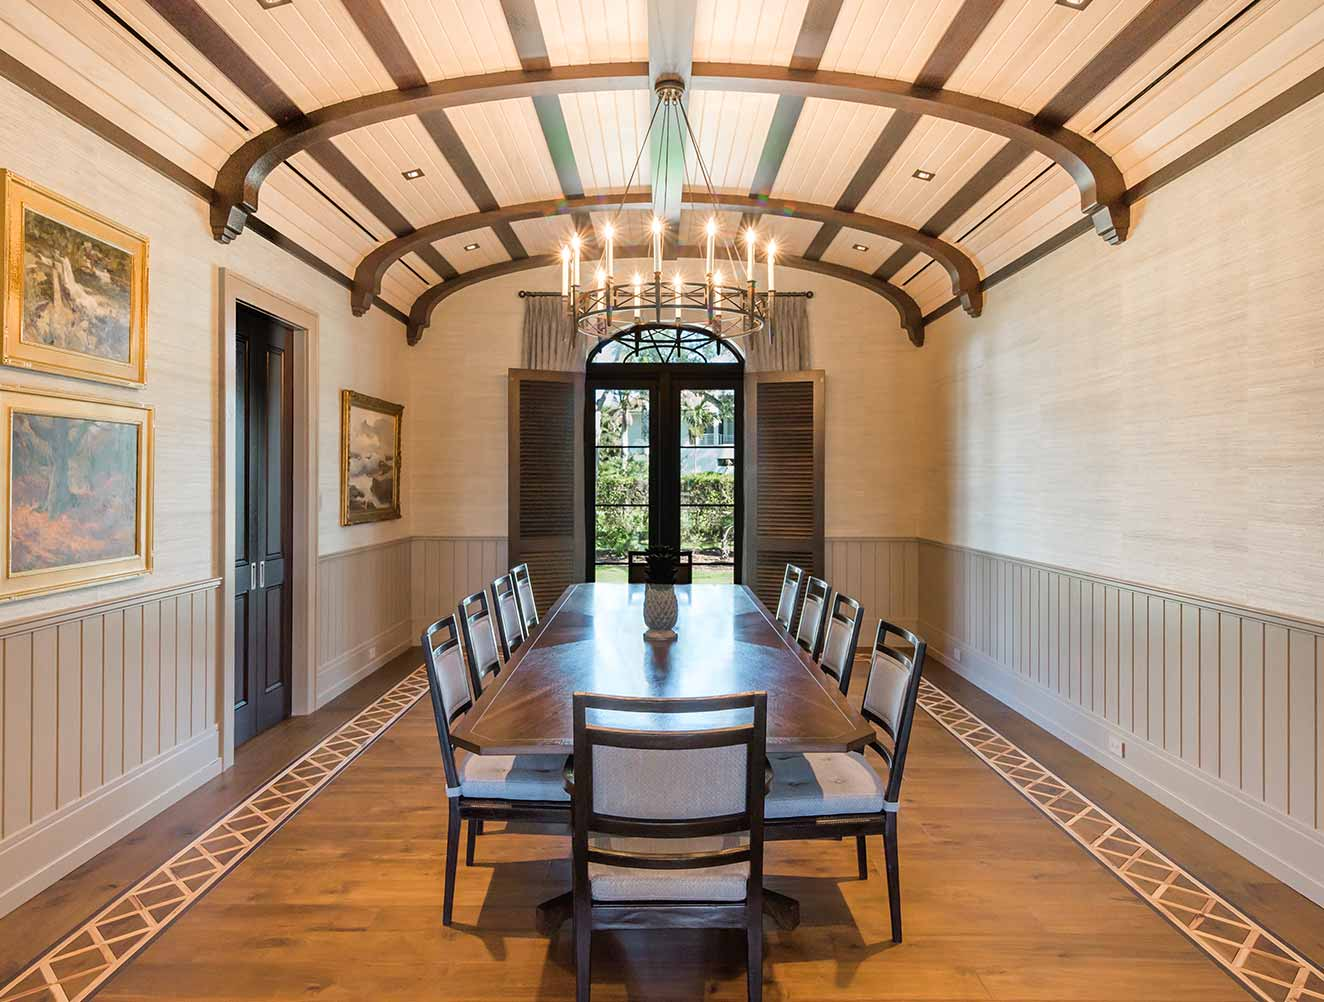 Formal Dining Room Ceiling Design Collection in Naples Florida homes. Designed by Kukk Architecture & Design Naples.